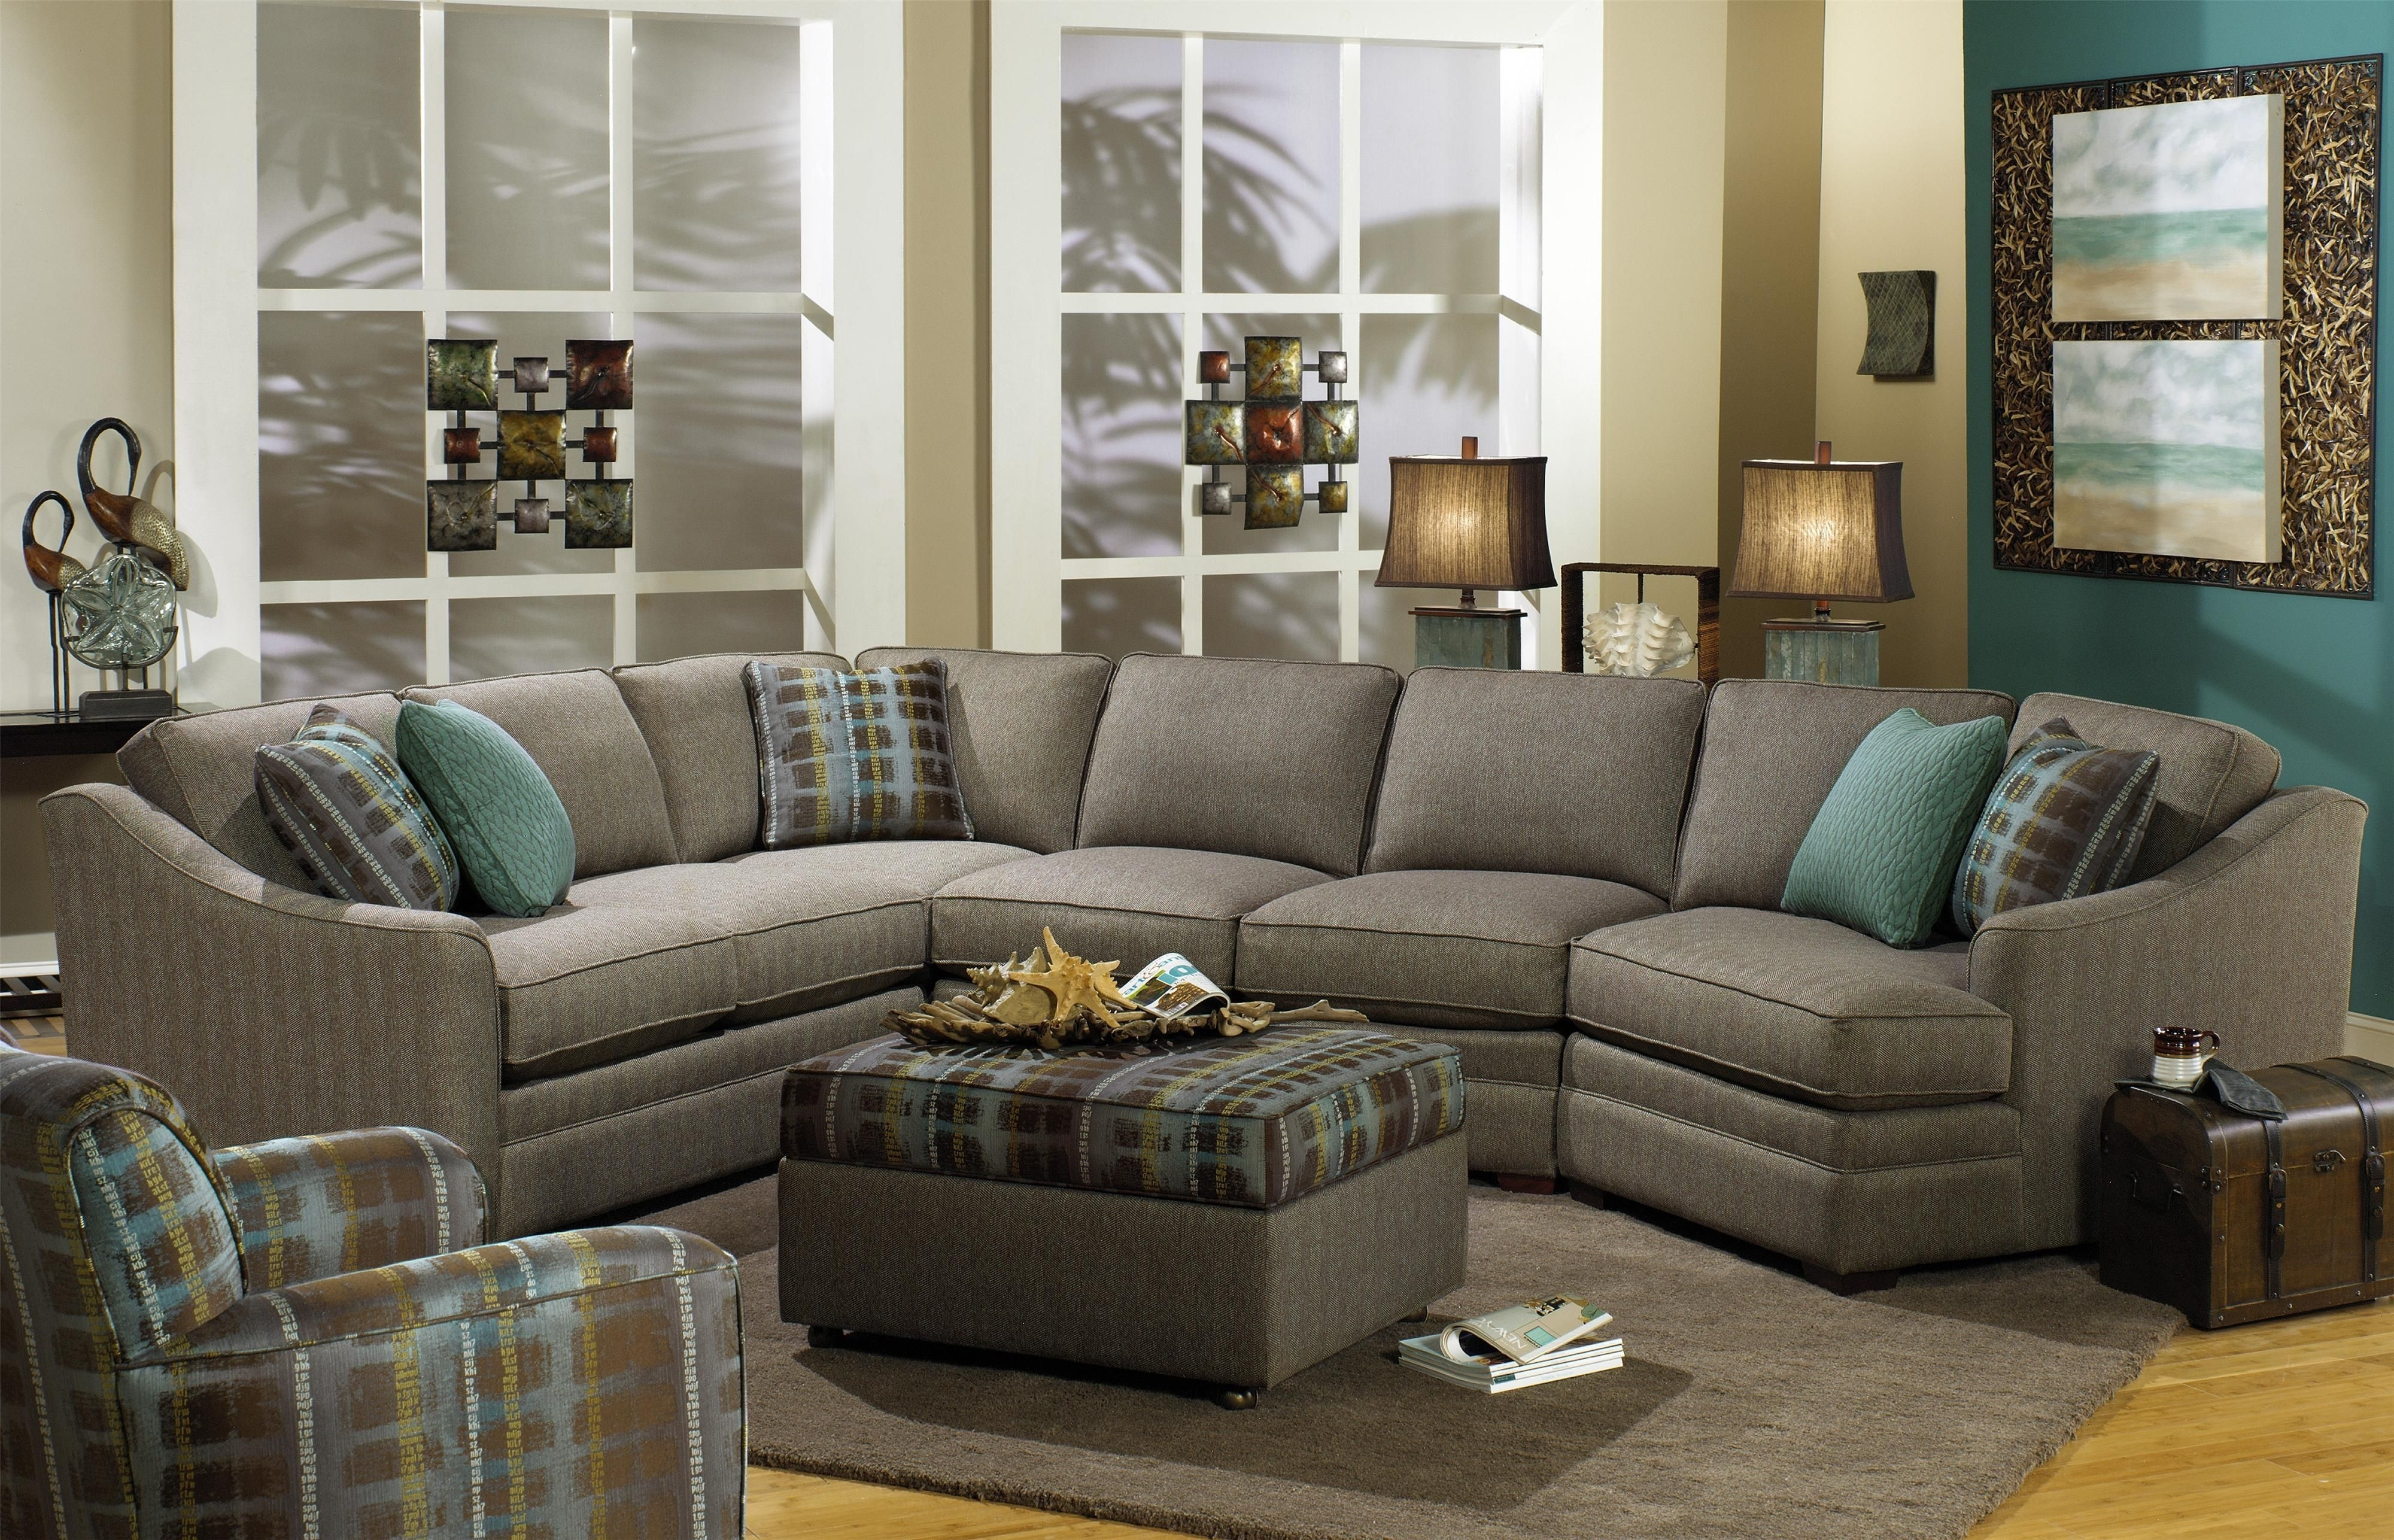 F9 Custom Collection Customizable 3 Piece Sectional With Laf Cuddler For Murfreesboro Tn Sectional Sofas (View 4 of 10)